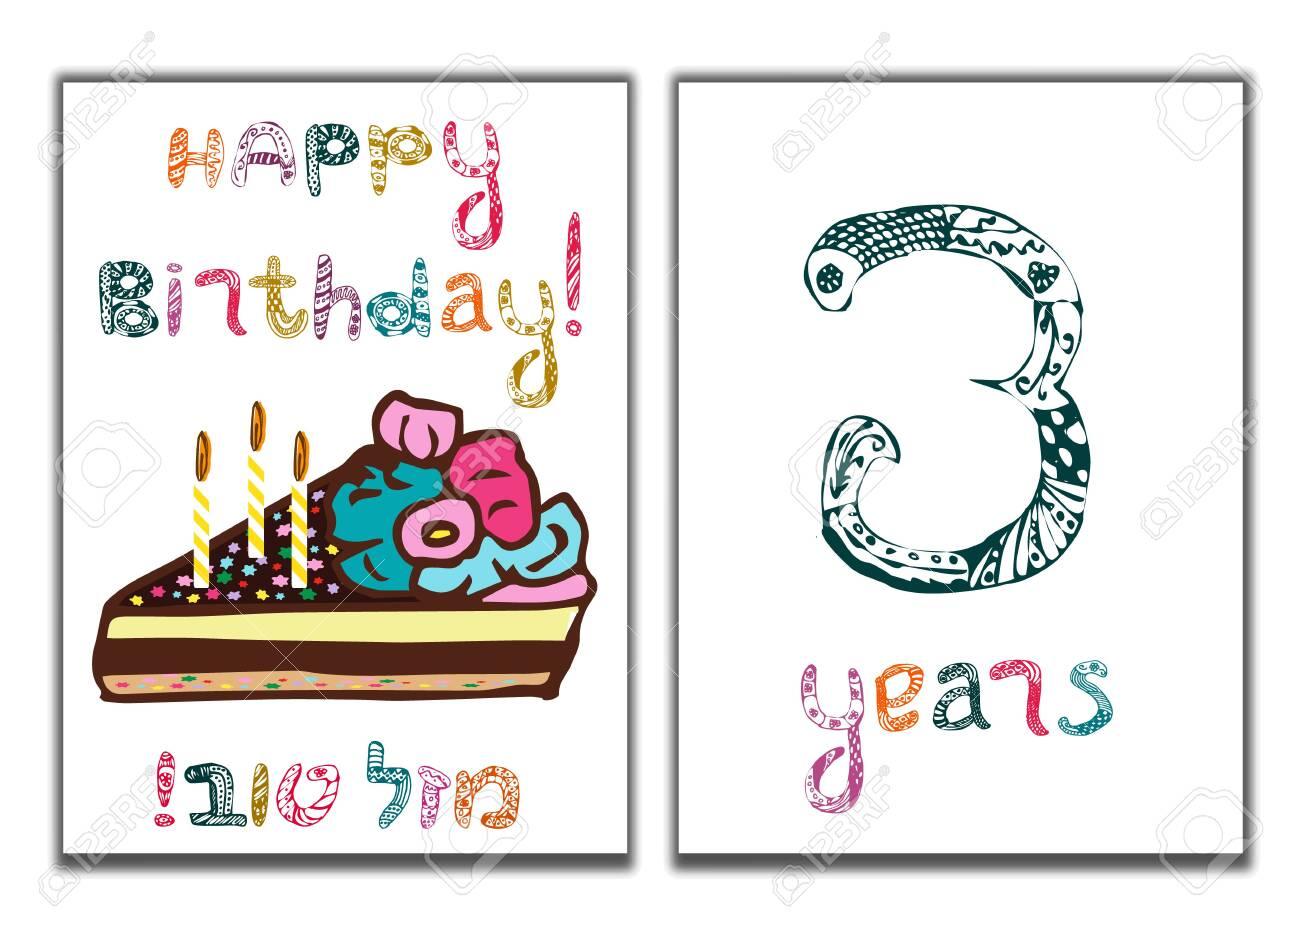 The Inscription Of Happy Birthday Mazl Tov In Hebrew In Translation Royalty Free Cliparts Vectors And Stock Illustration Image 122657120